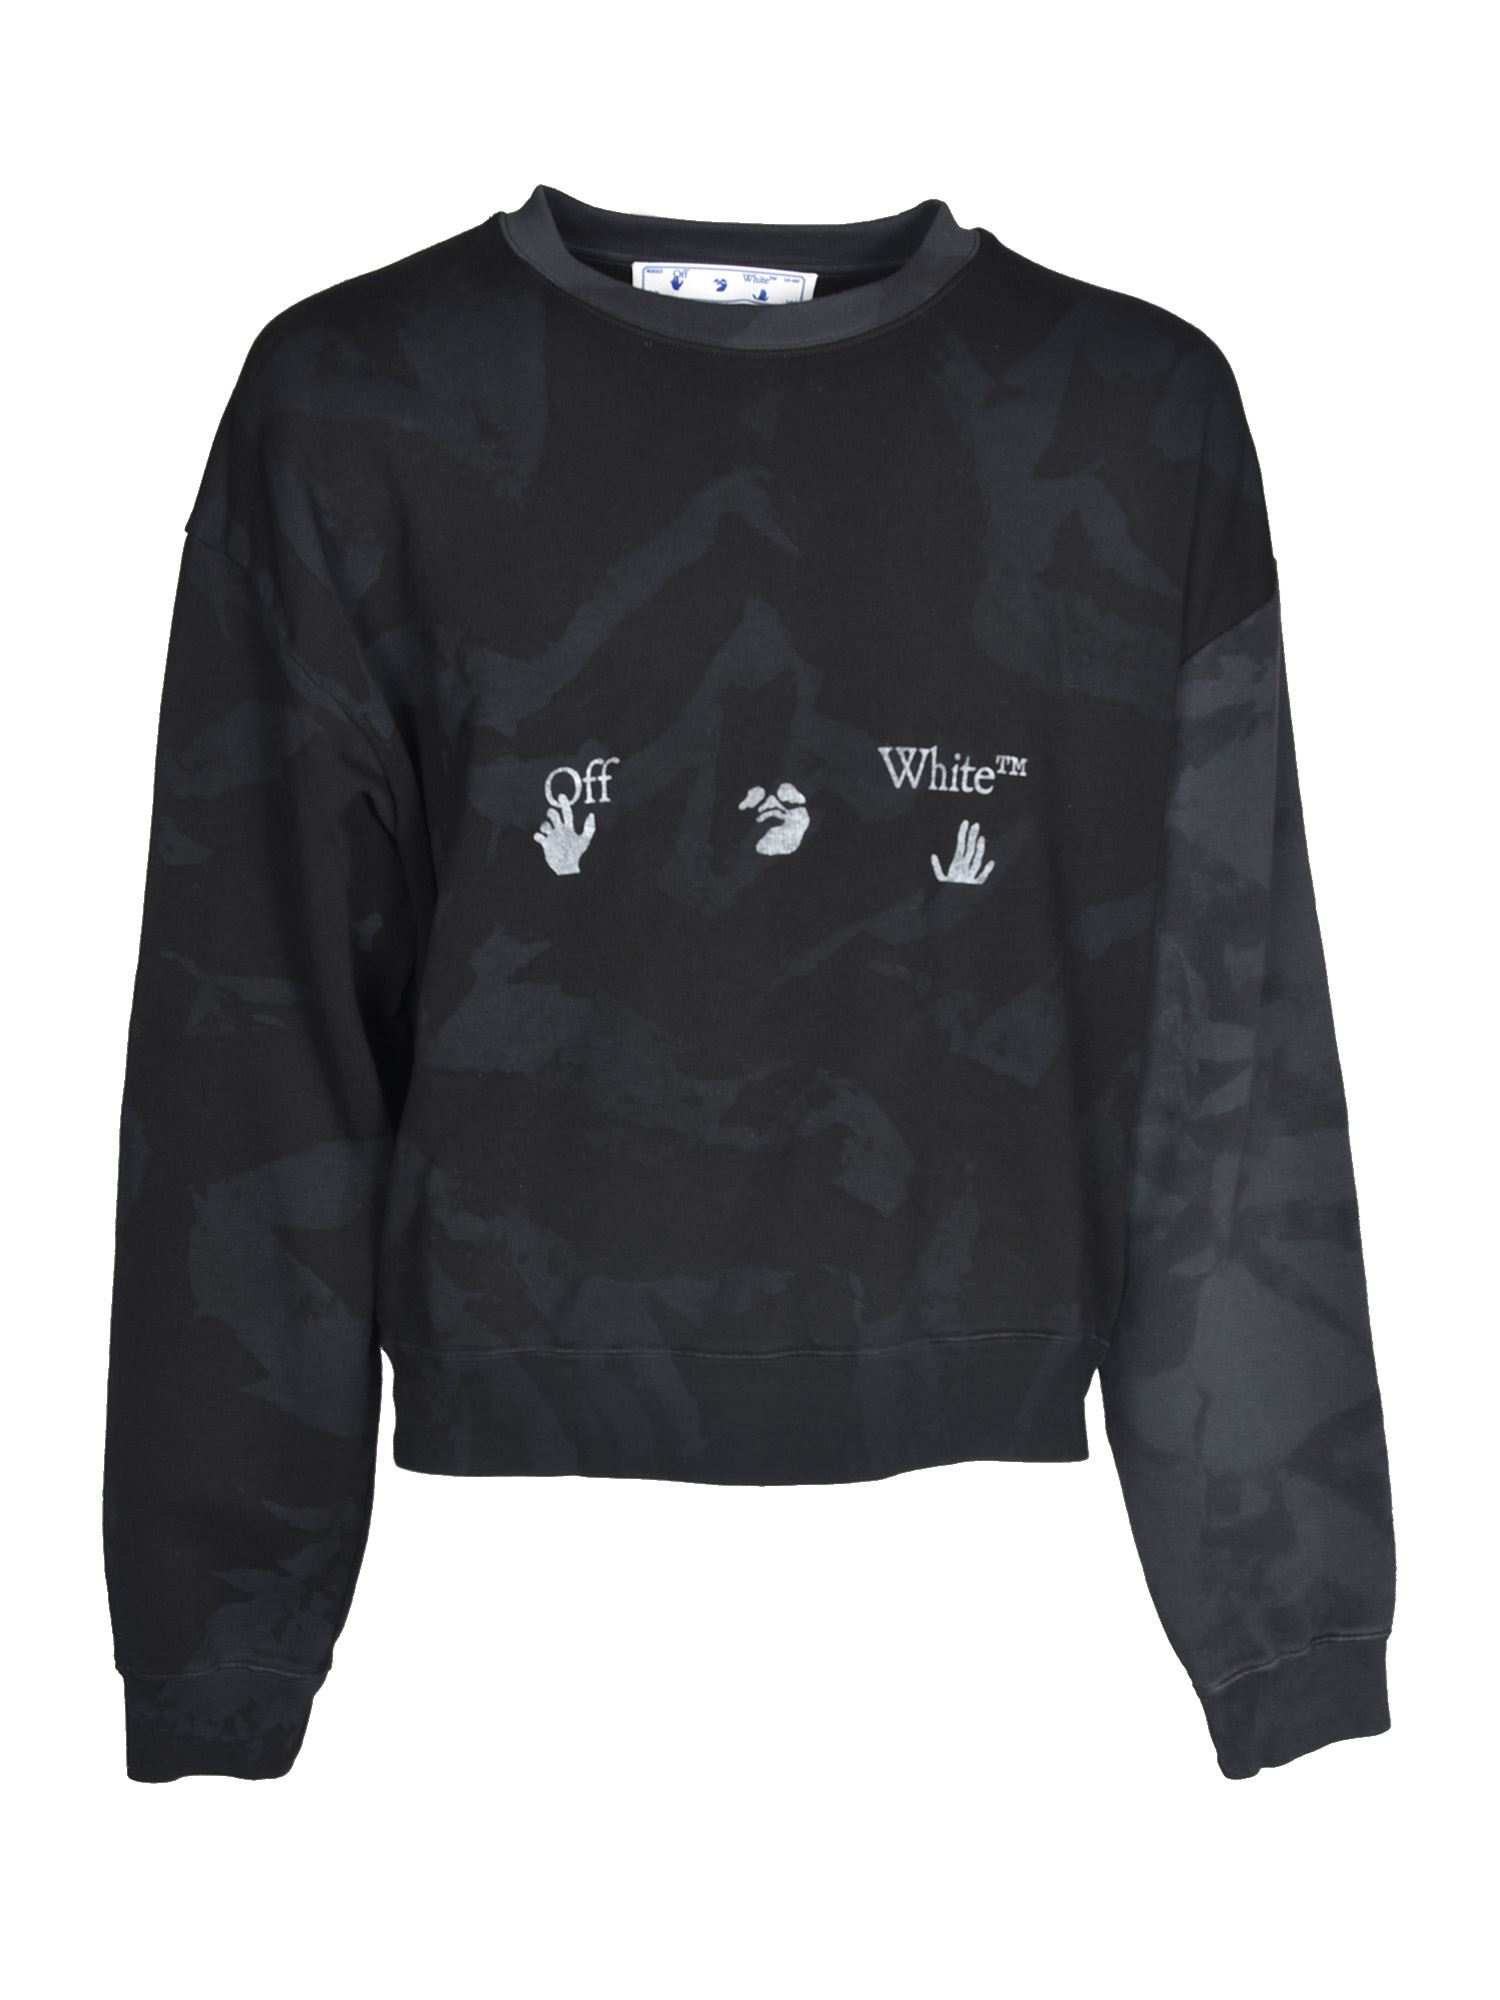 Off-White TIE DYE SWEATSHIRT IN GREY